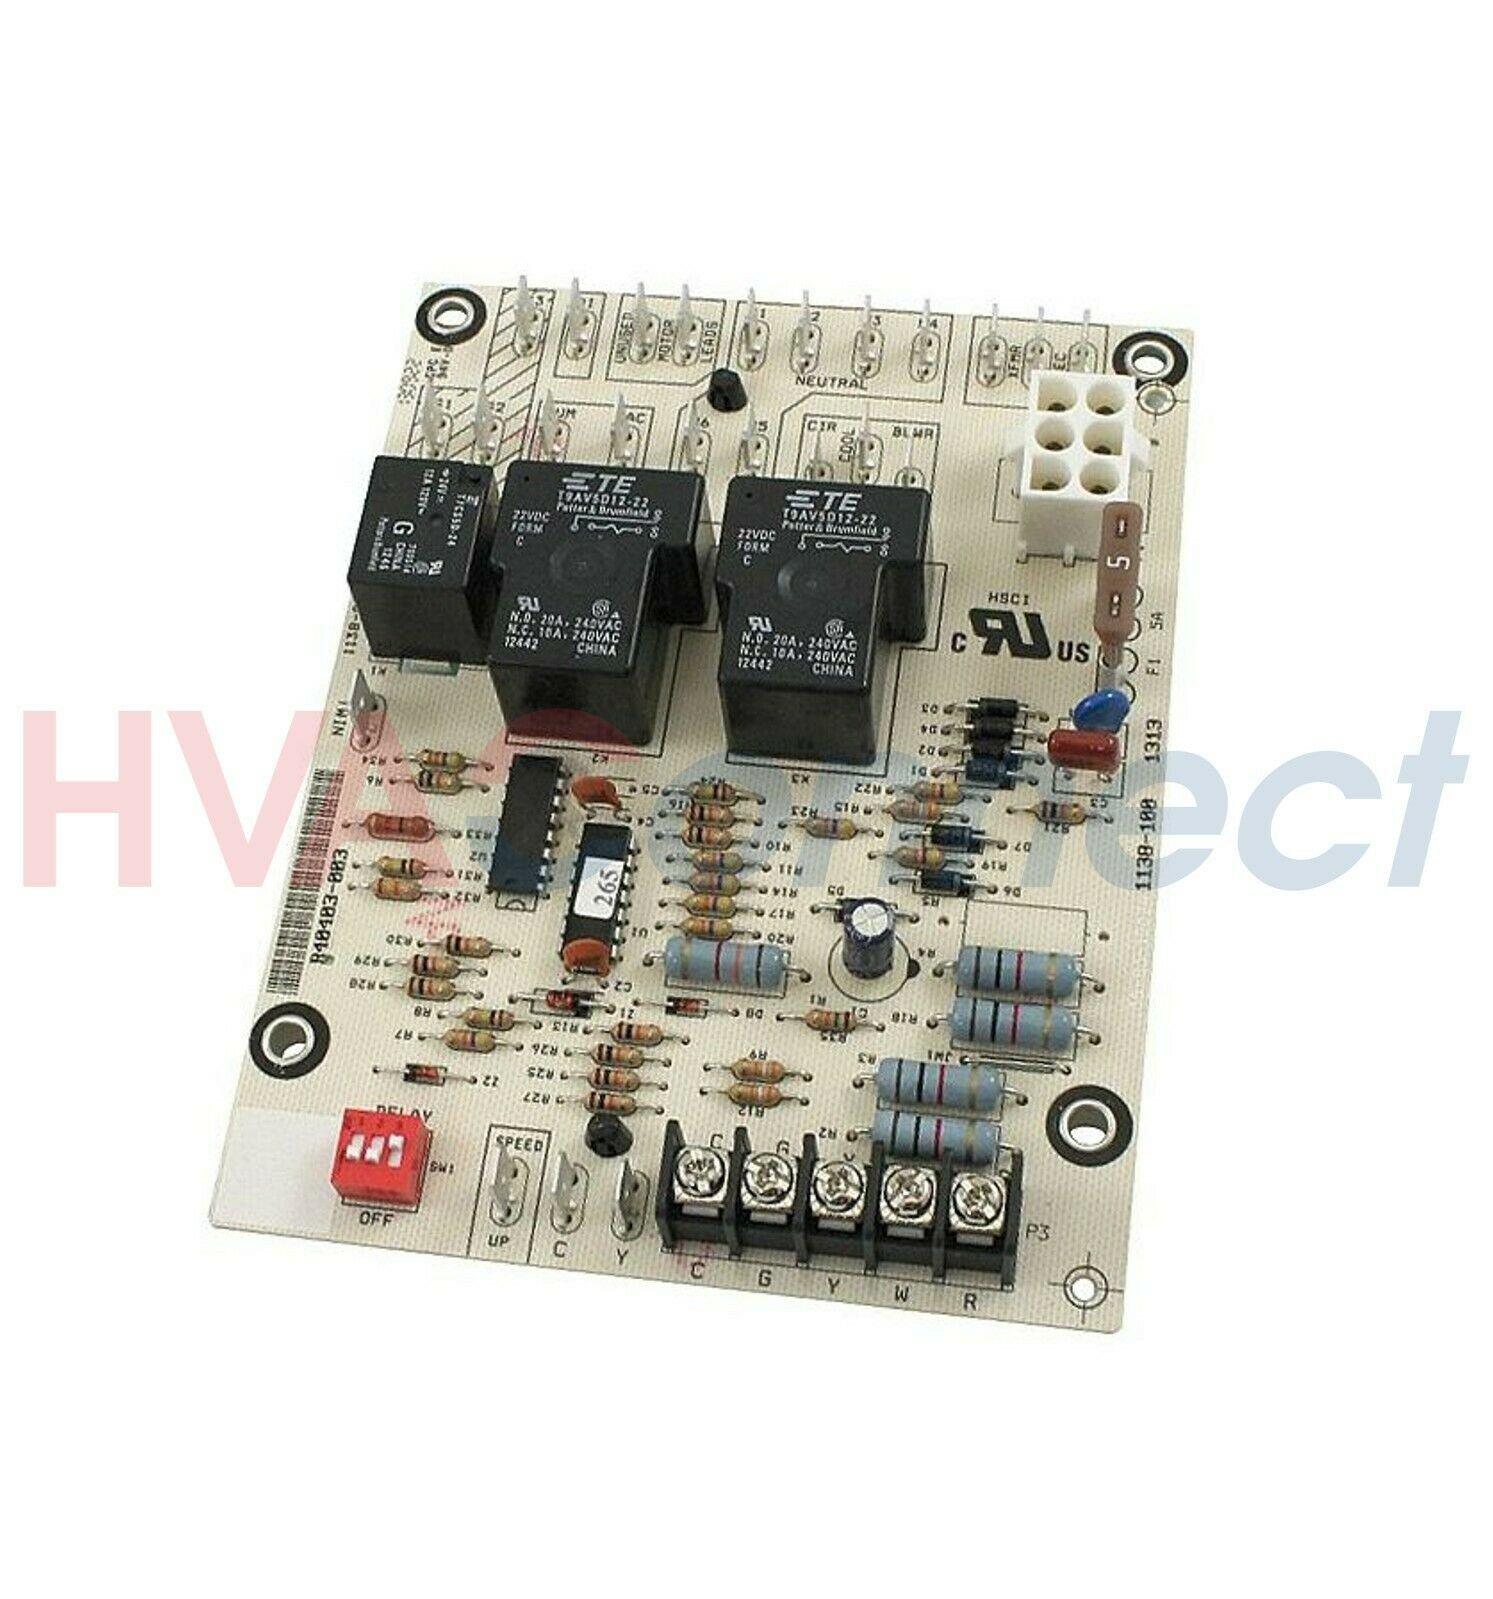 Honeywell Furnace Fan Control Circuit Board ST9120C3000 1 of 1Only 4  available ...